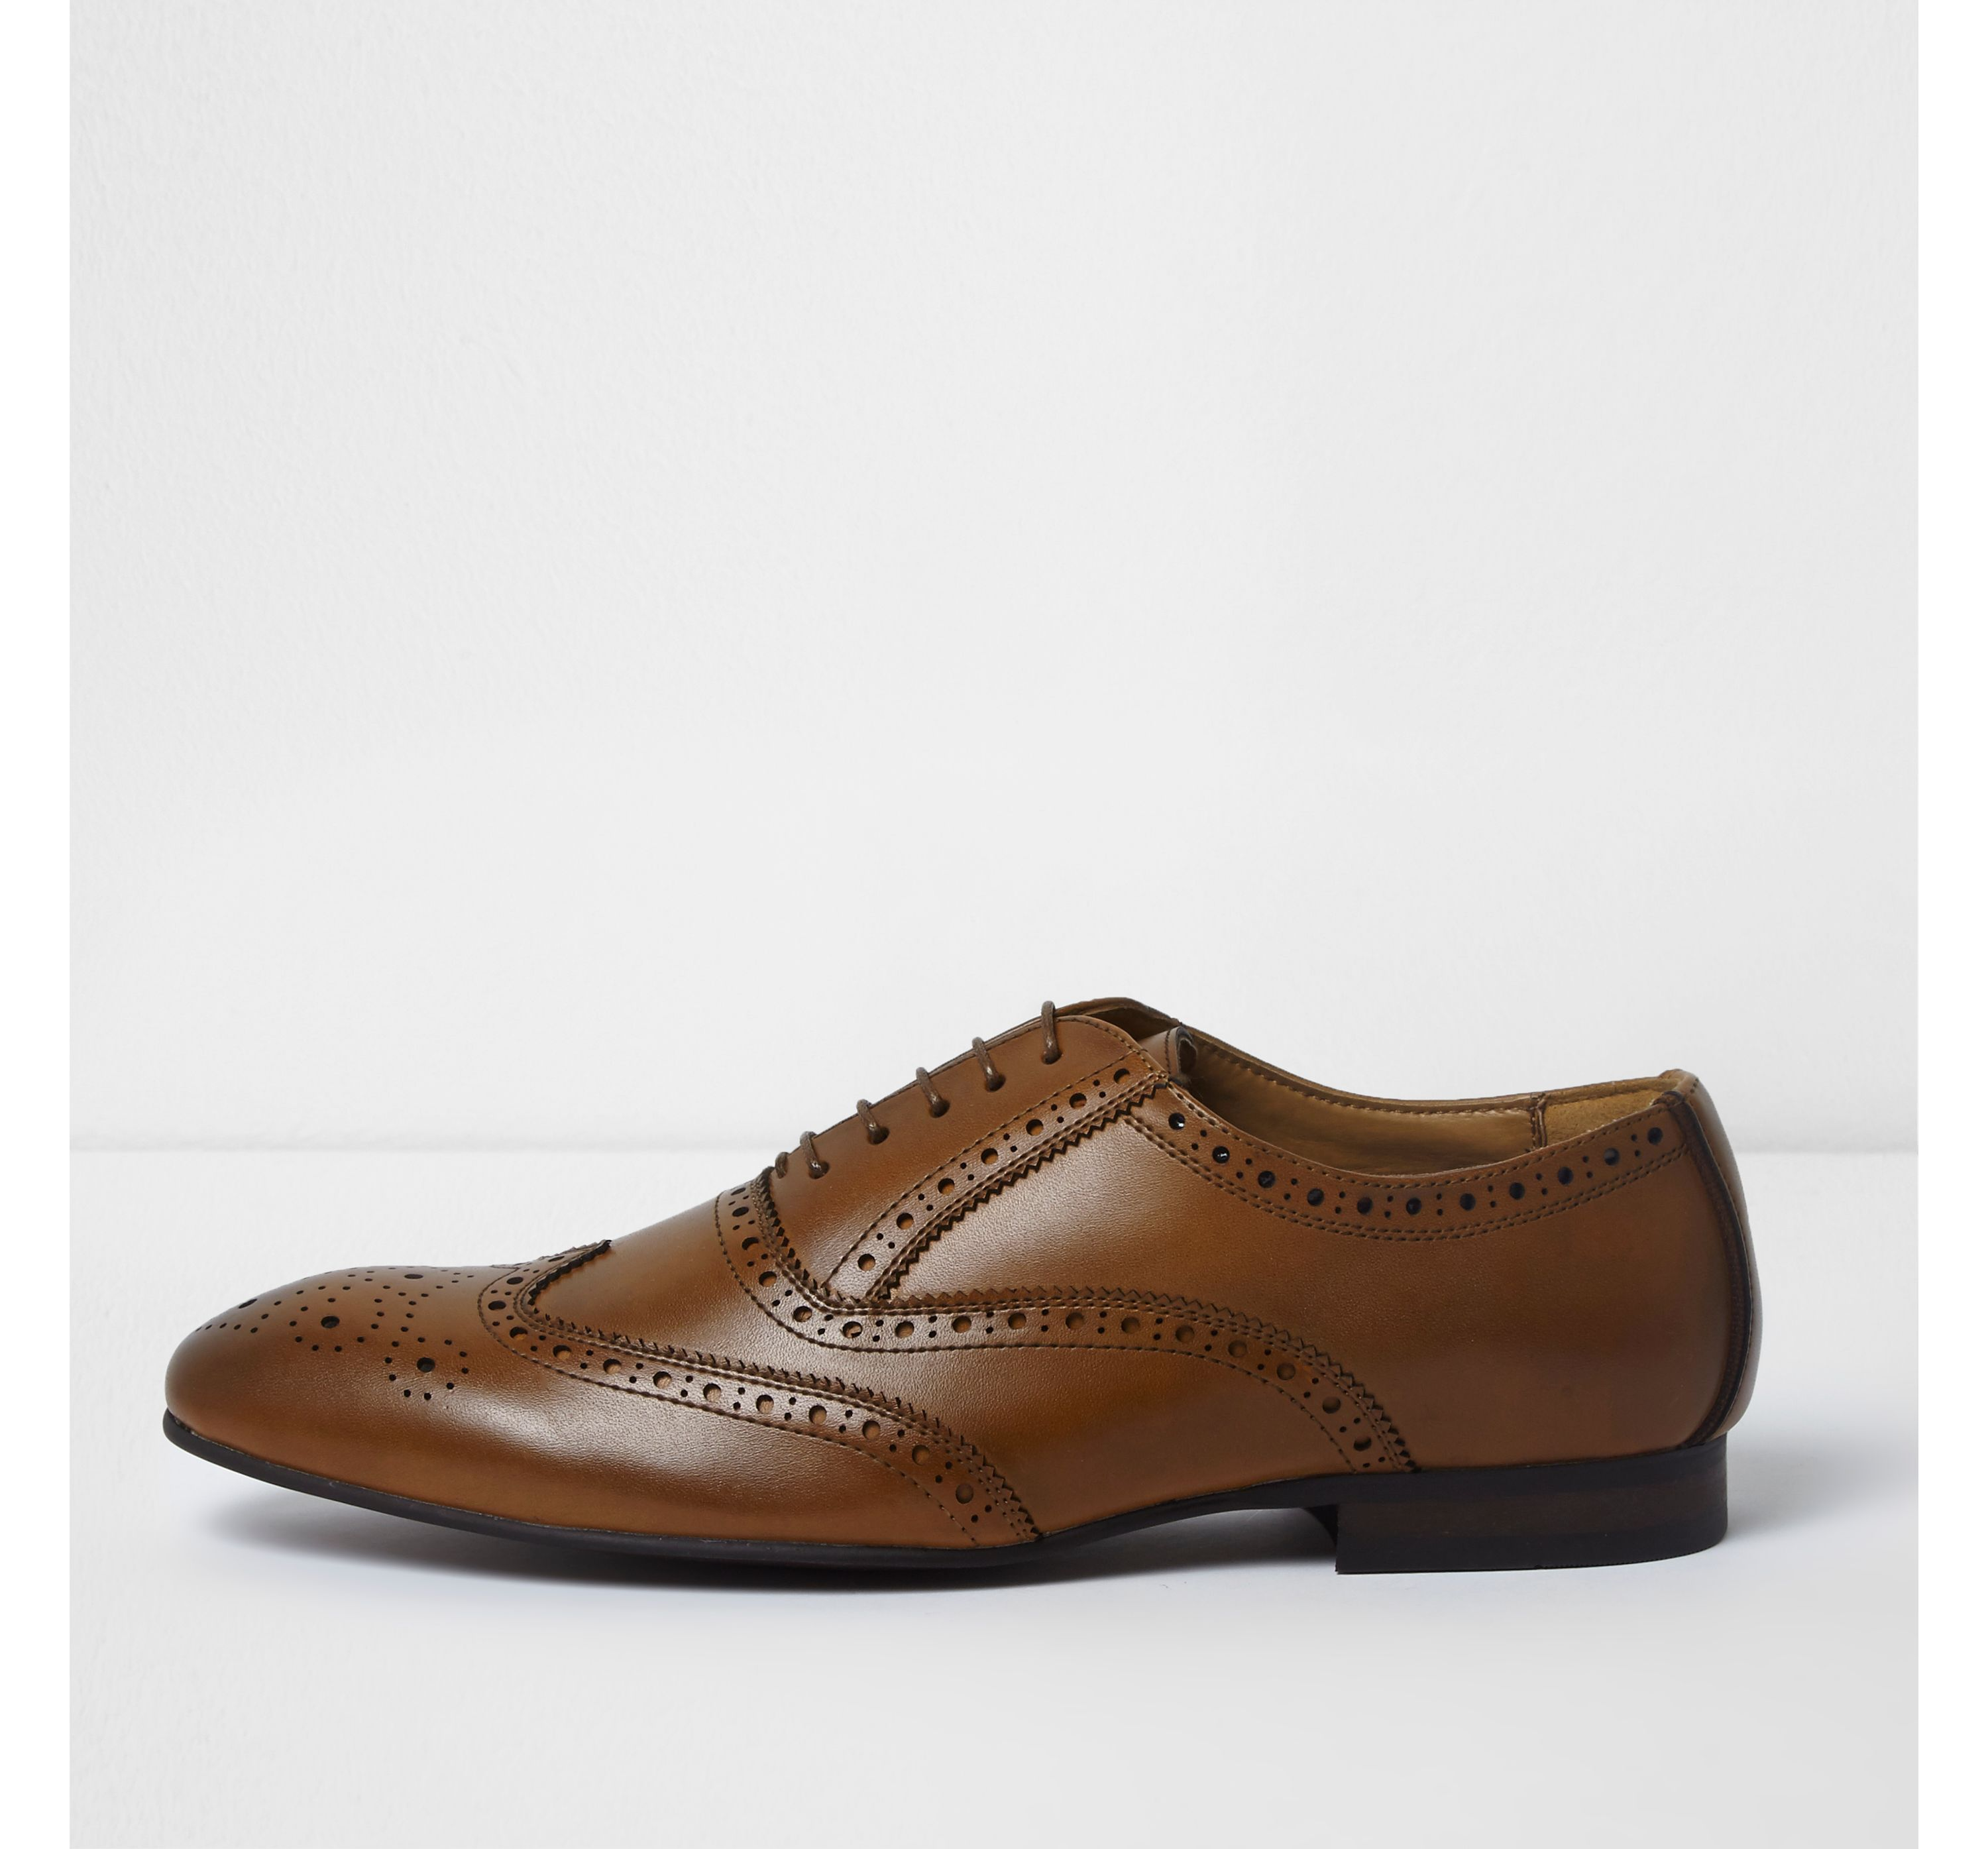 River Island Mens Tan brown lace-up oxford brogues